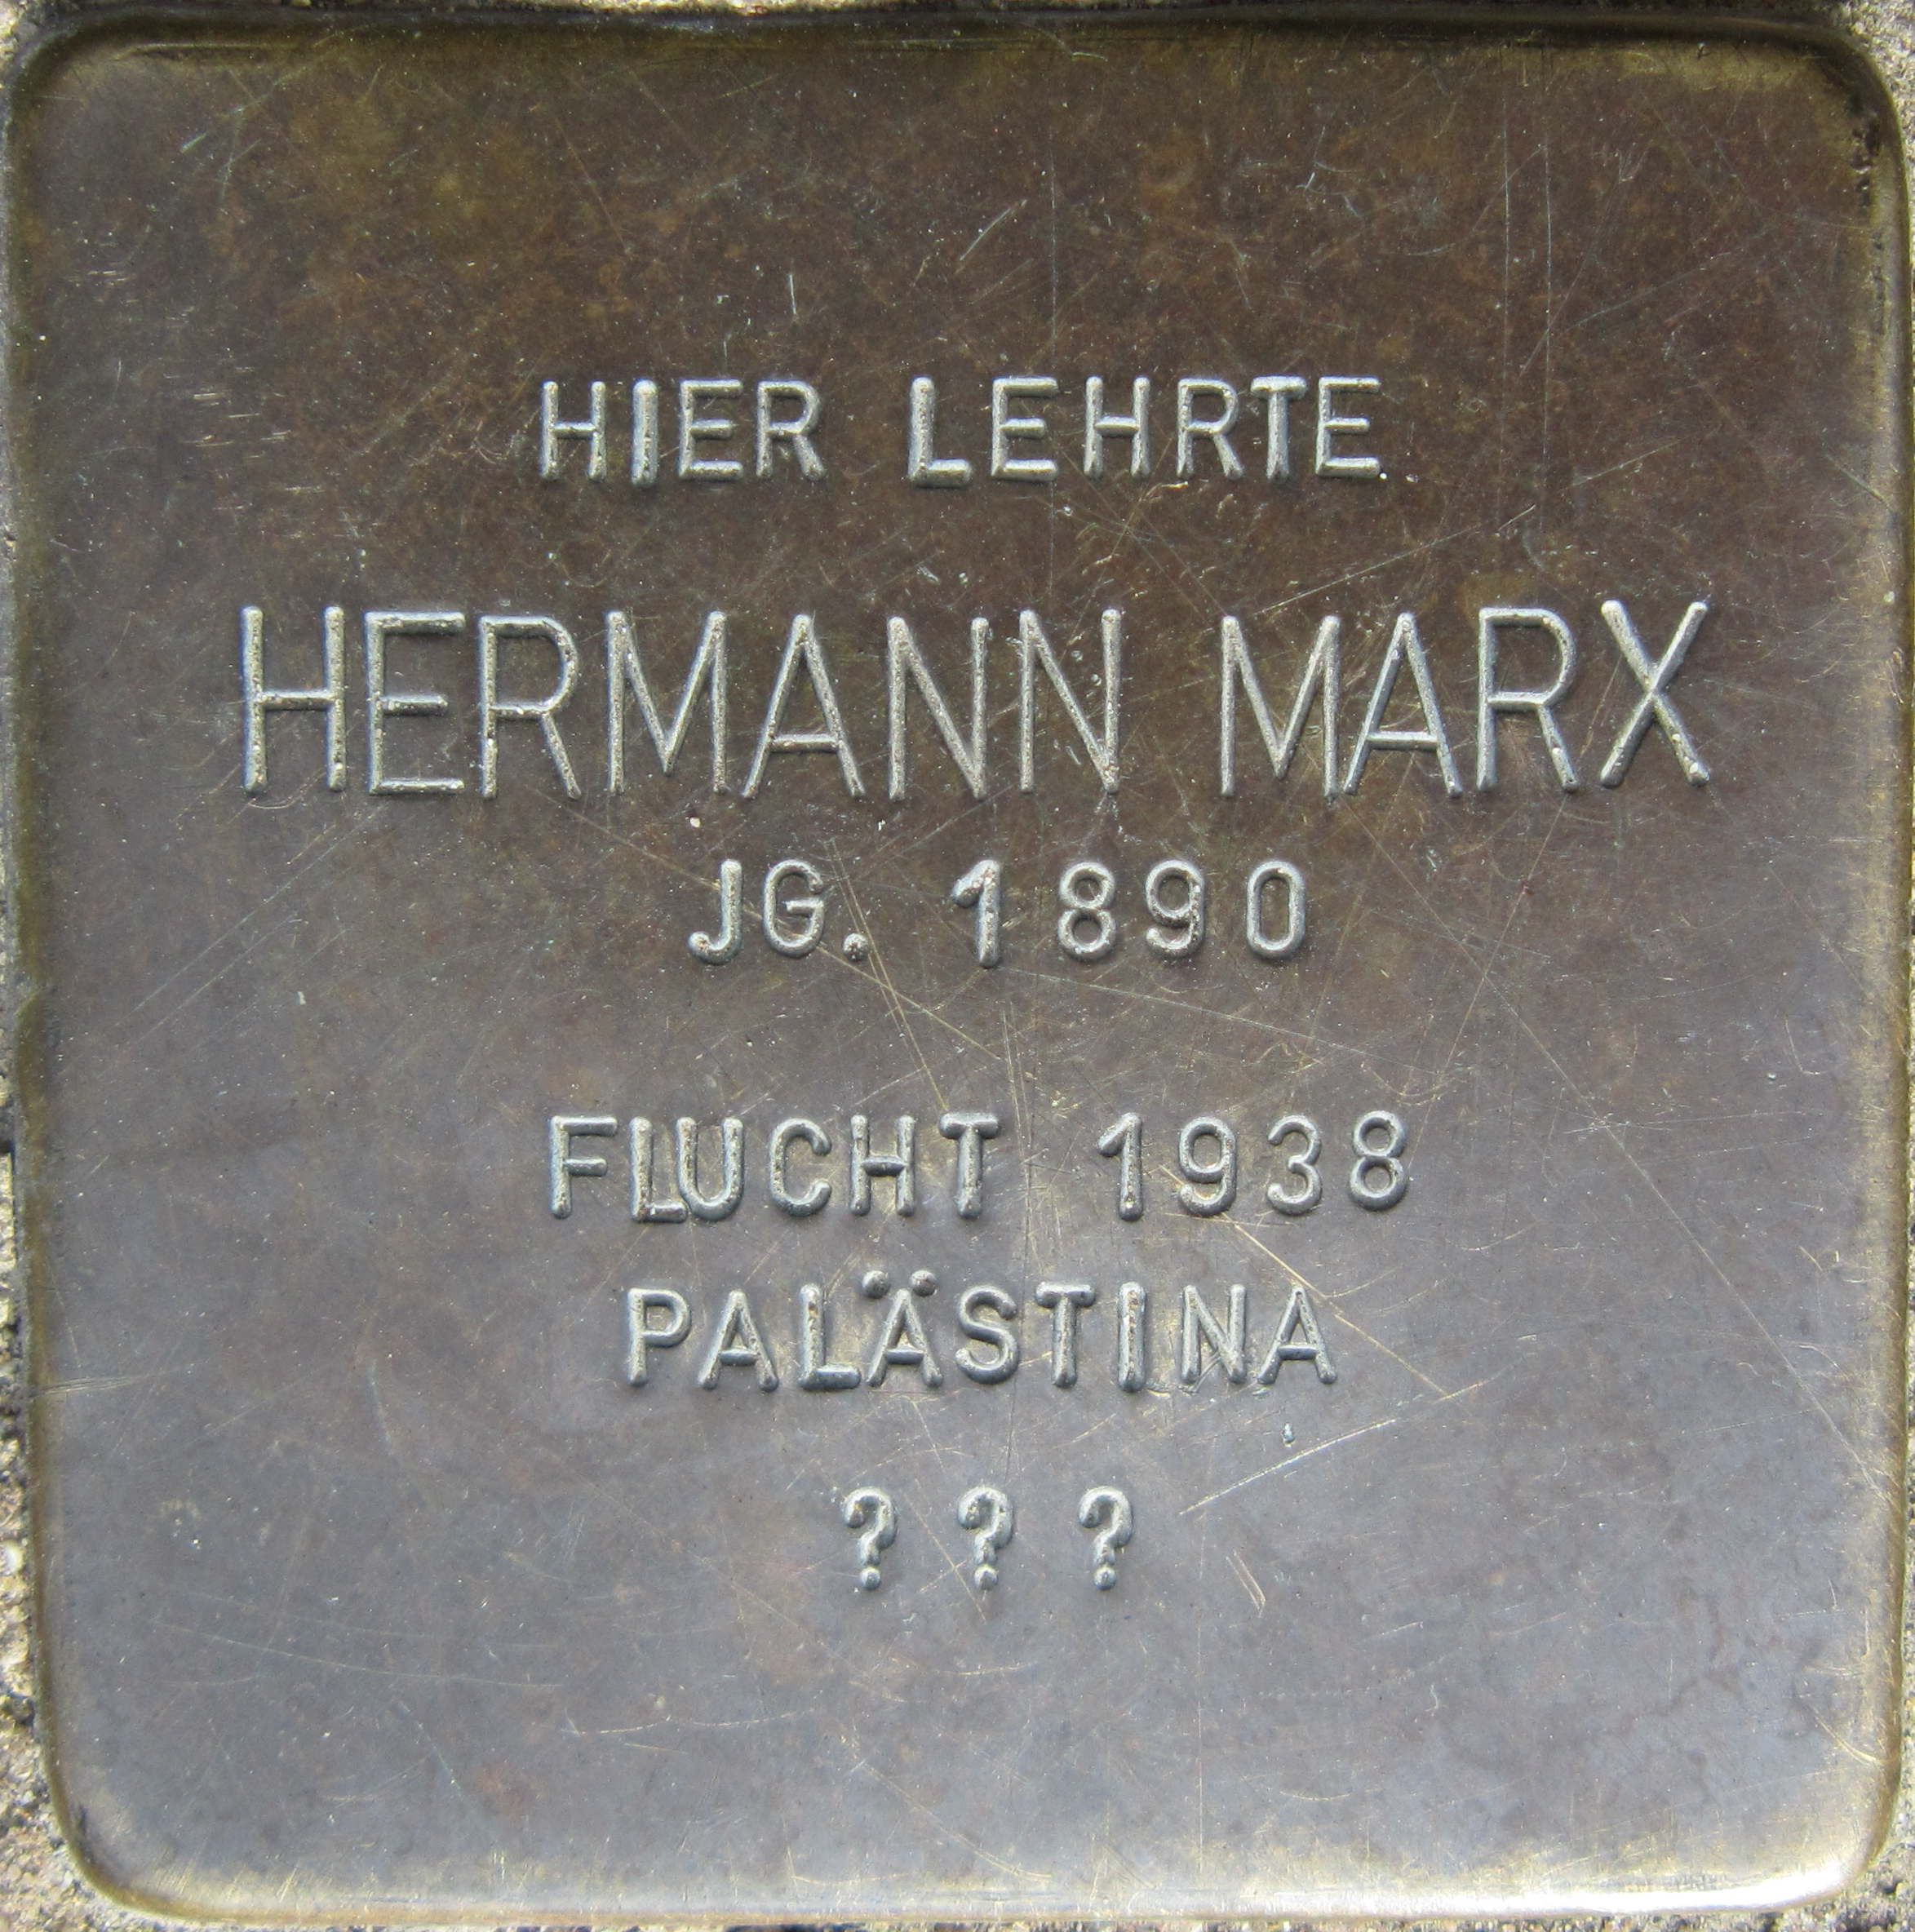 https://upload.wikimedia.org/wikipedia/commons/5/58/Stolperstein_Pforzheim_Marx_Hermann.jpeg